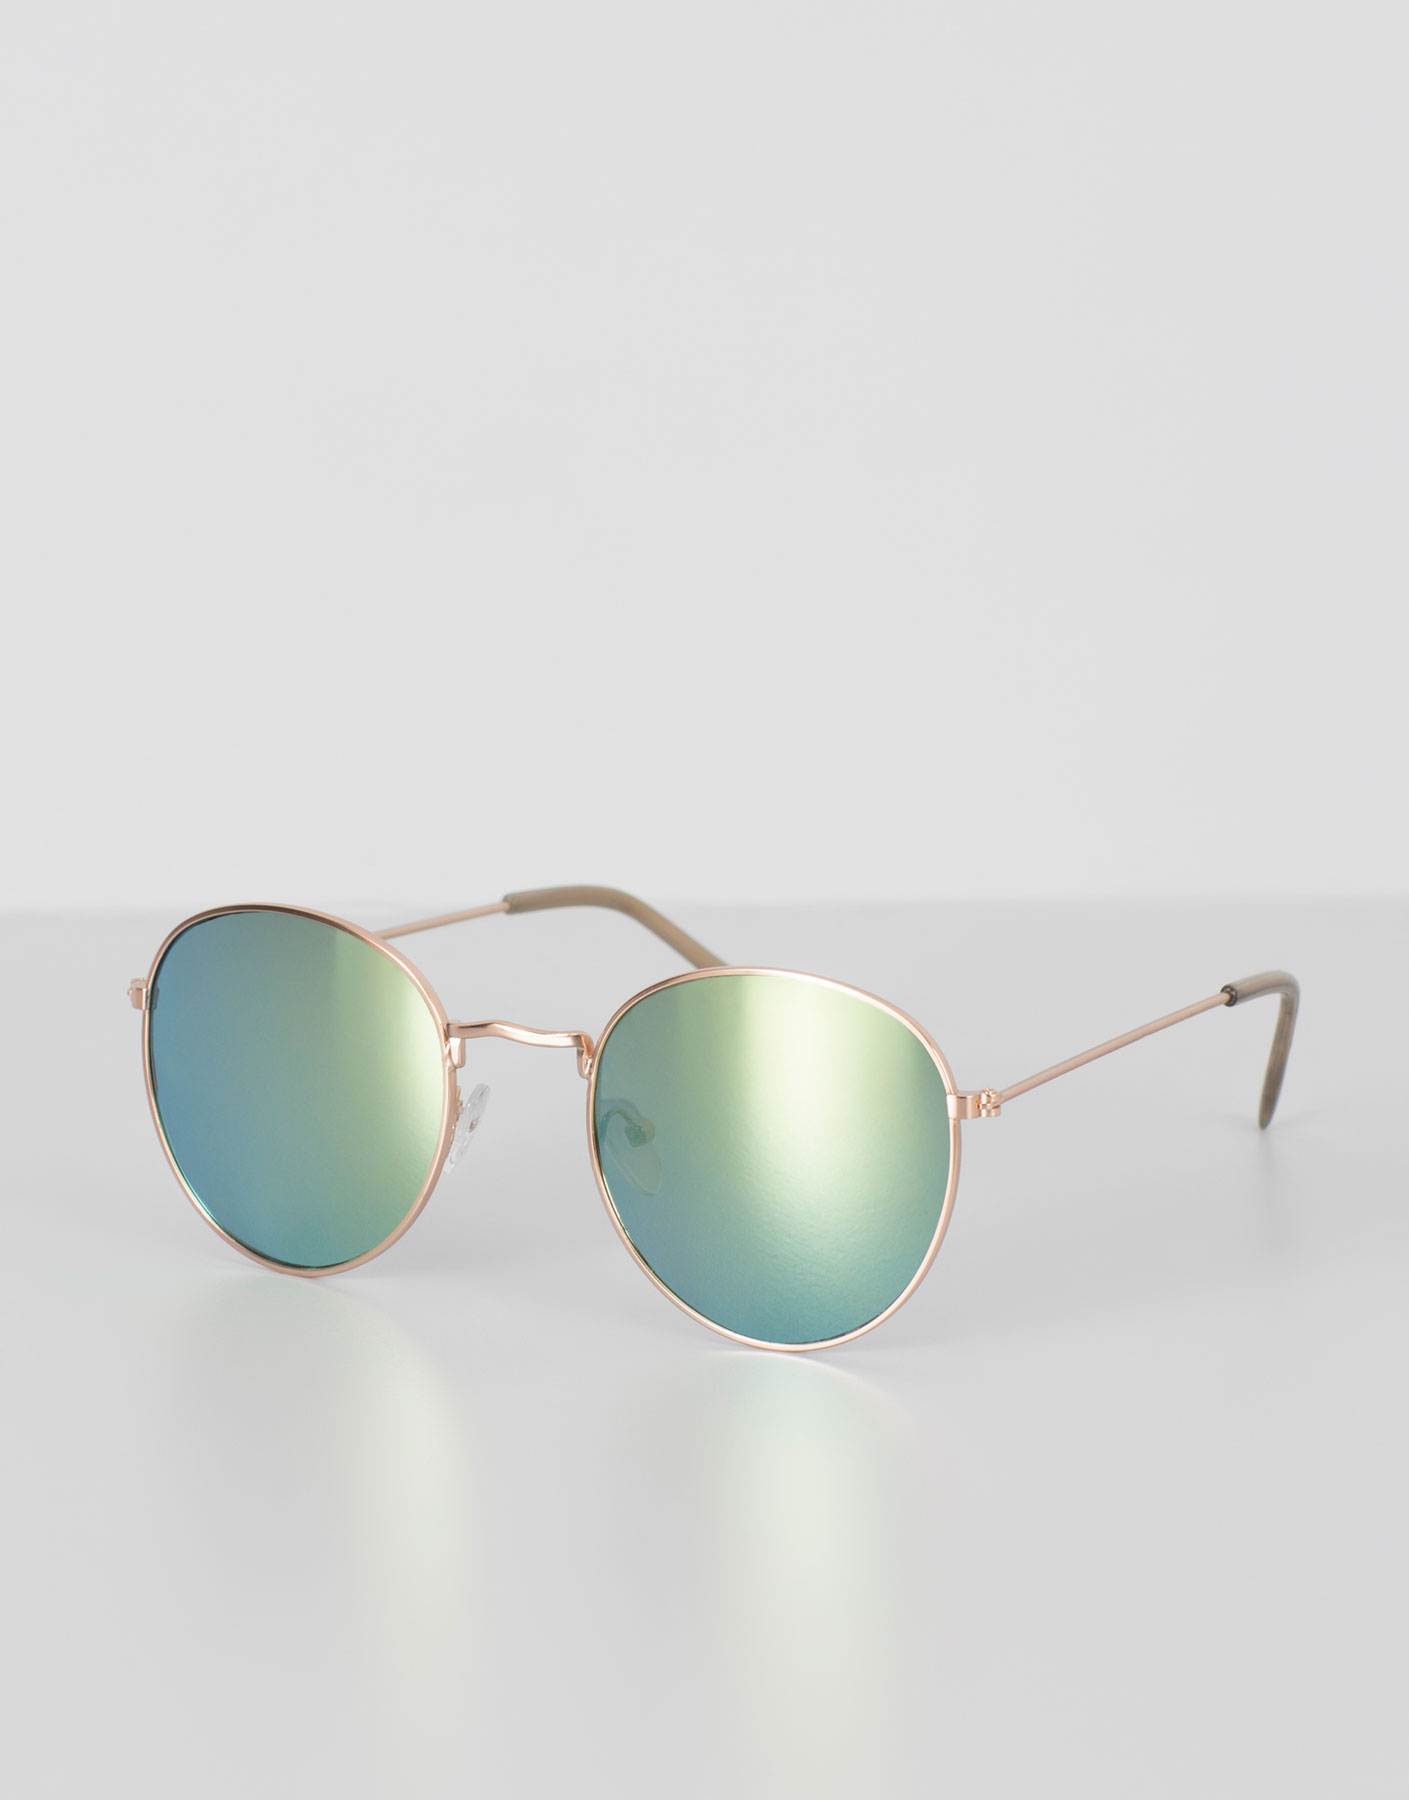 Golden mirrored sunglasses